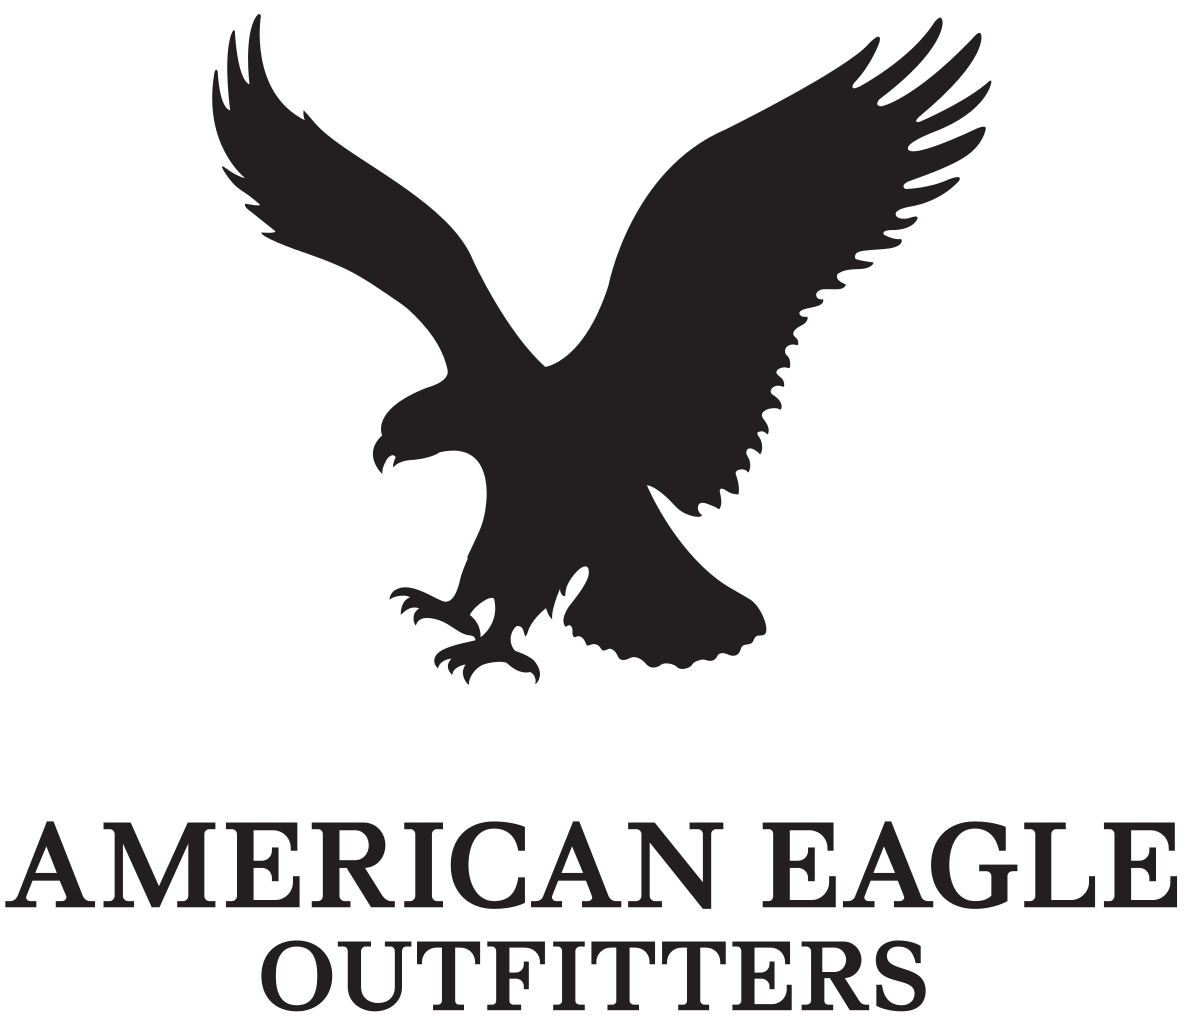 american eagle outfitters png logo 3229